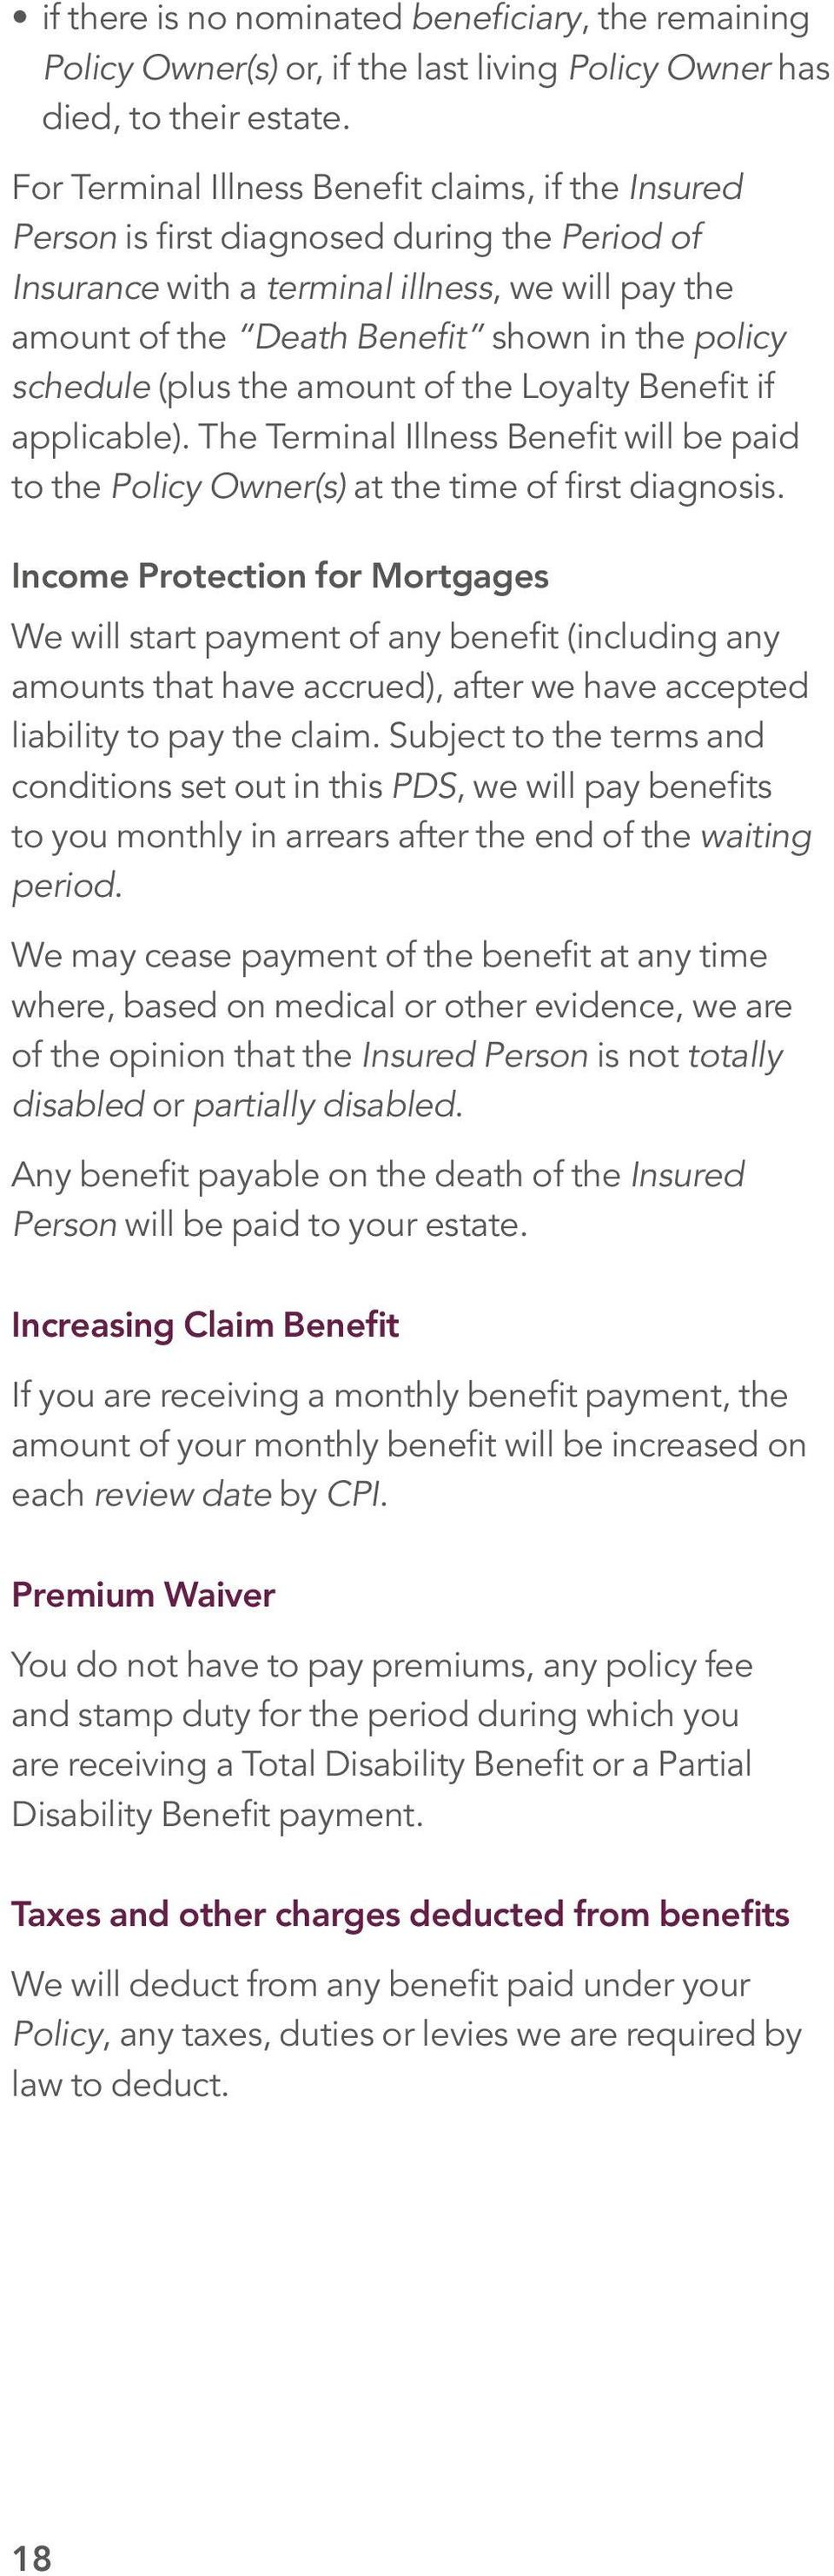 schedule (plus the amount of the Loyalty Benefit if applicable). The Terminal Illness Benefit will be paid to the Policy Owner(s) at the time of first diagnosis.